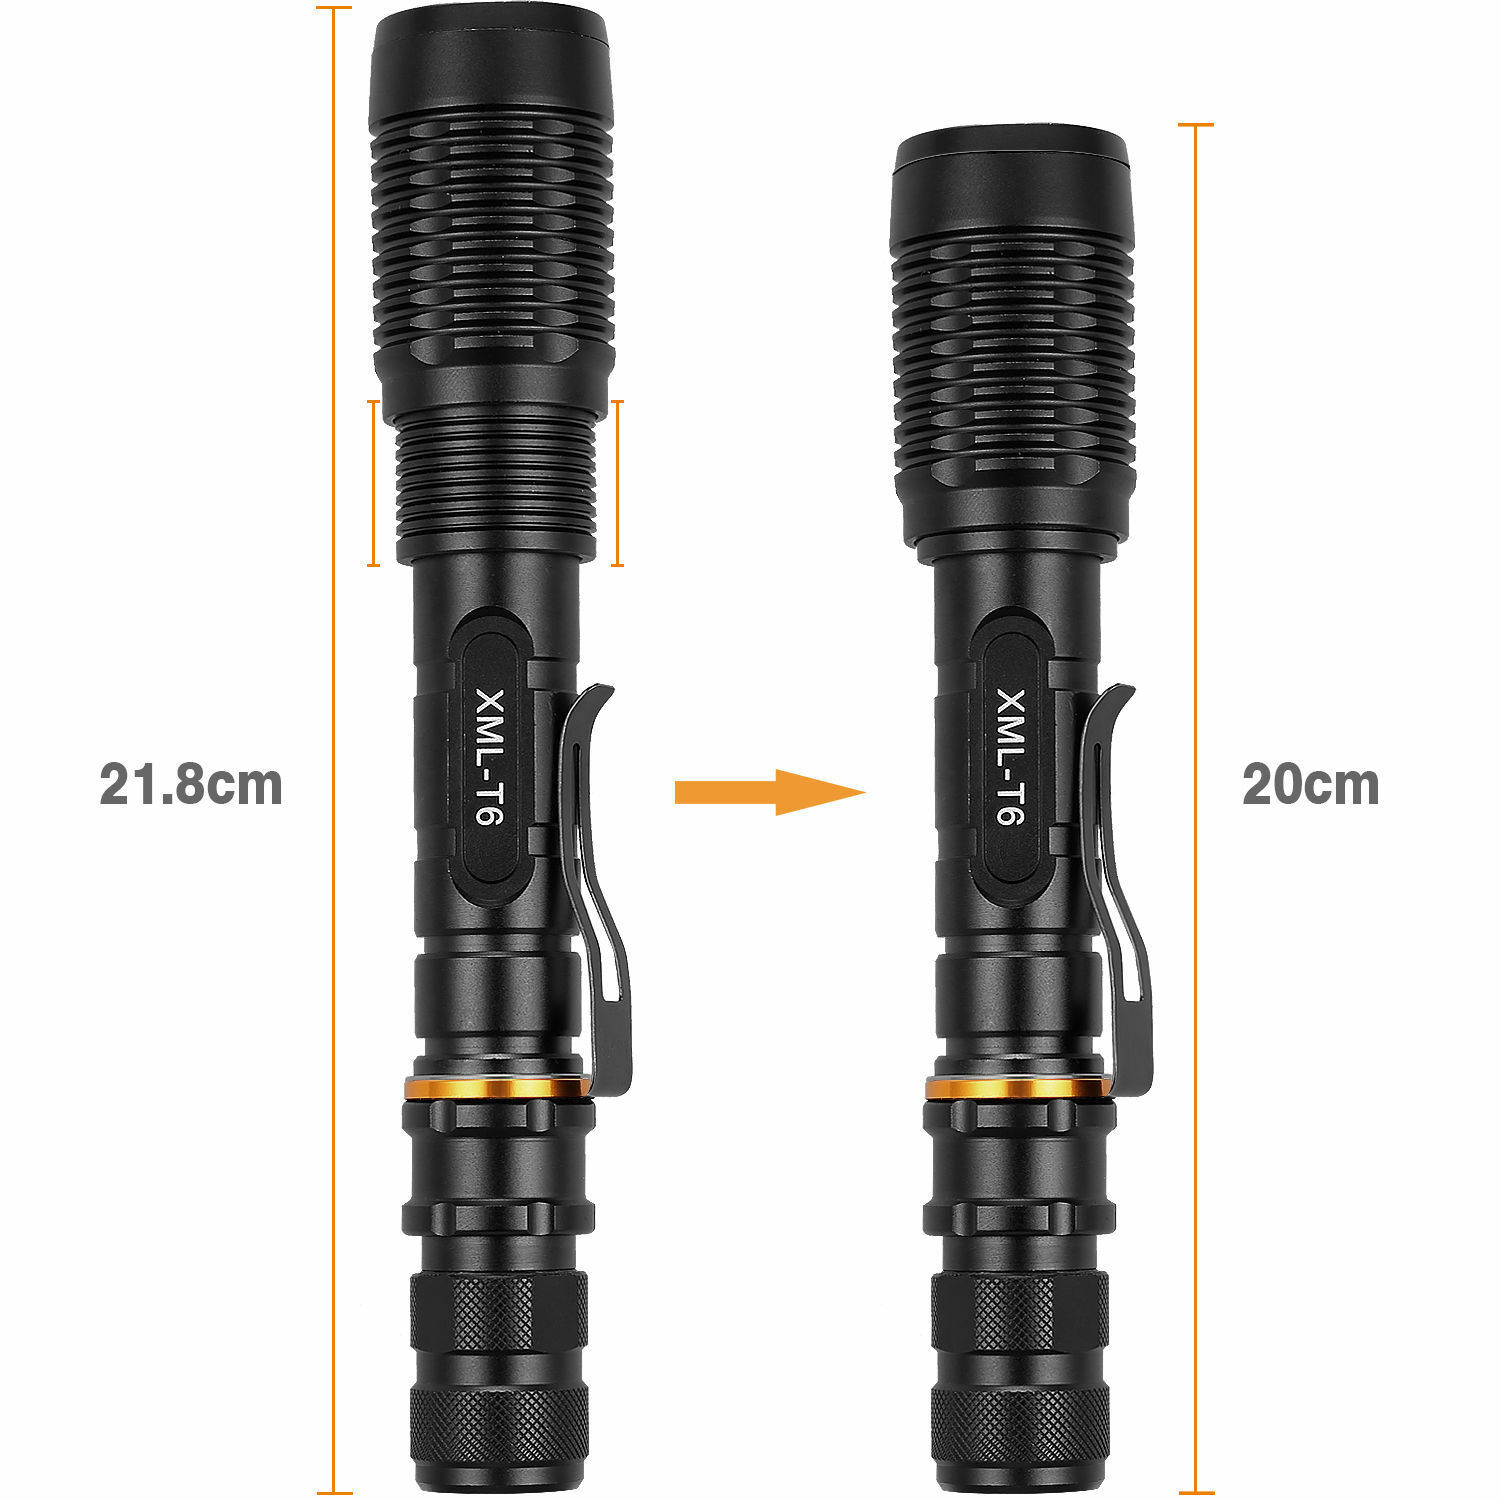 Tactical Police 13000Lumens T6 5Modes LED Flashlight Aluminum Torch Zoomable USA Camping & Hiking